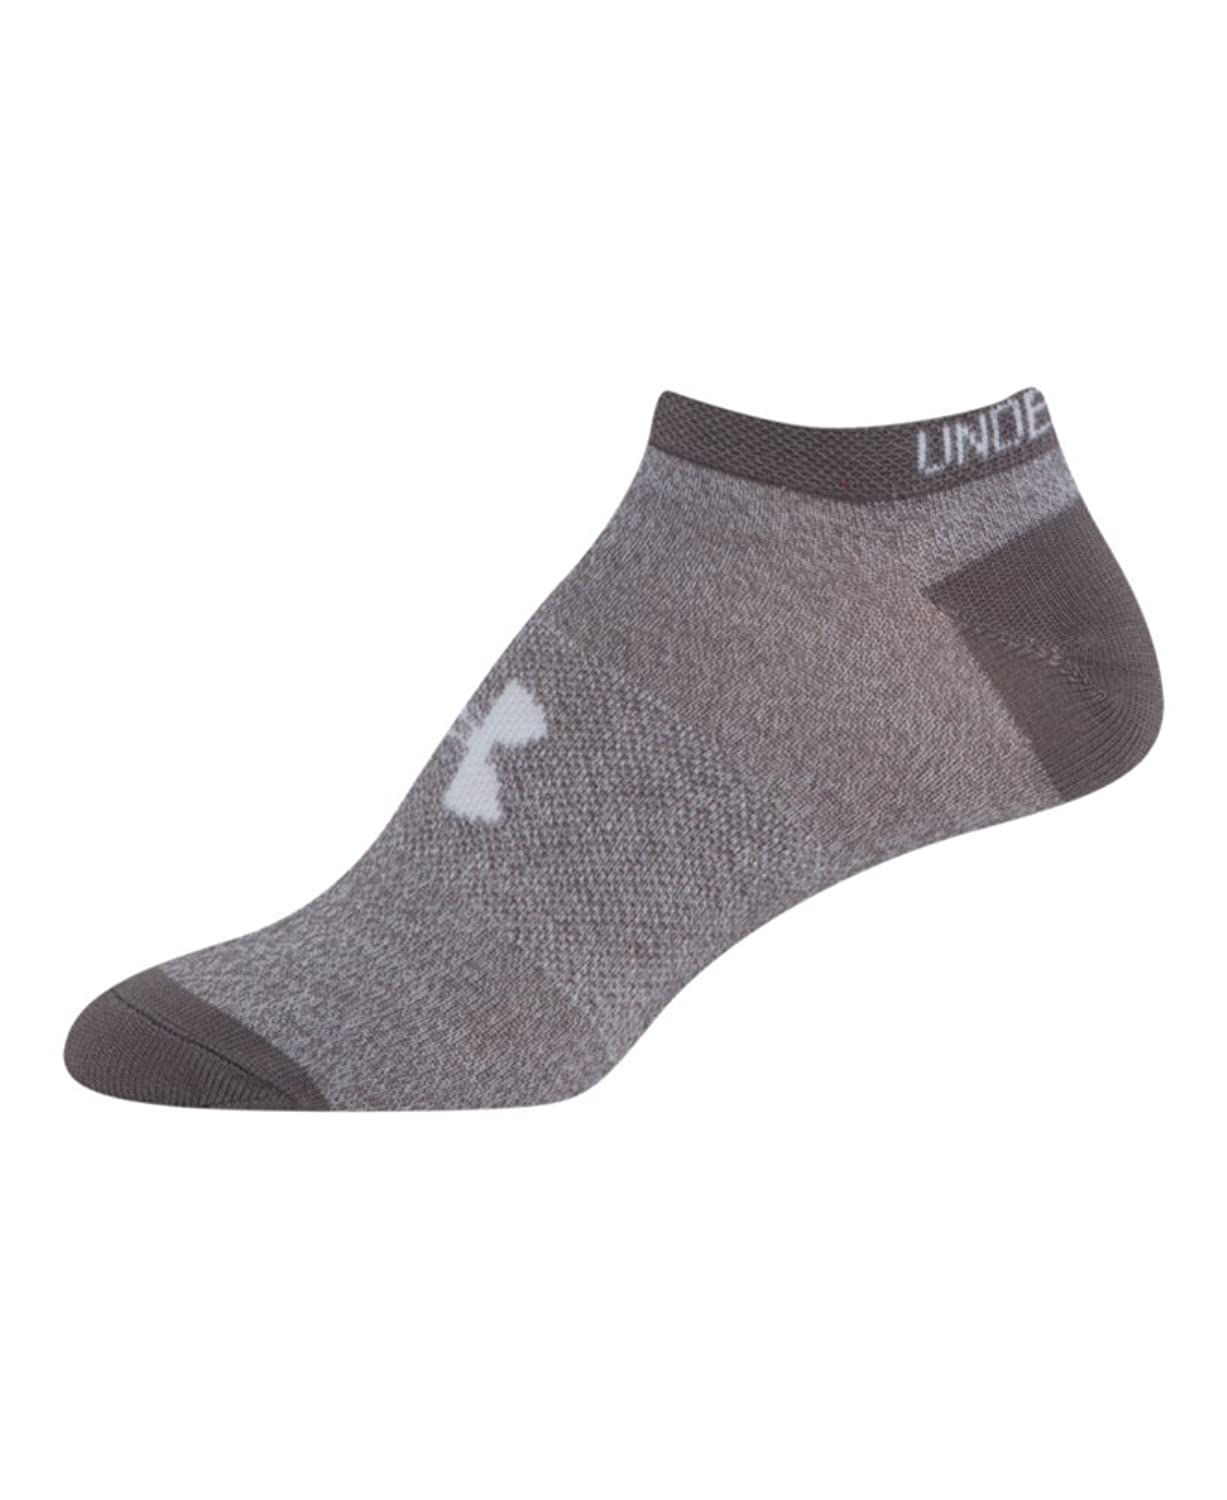 Amazon.com: Under Armour Girls UA Big Logo No Show Socks 6-Pack: Sports & Outdoors